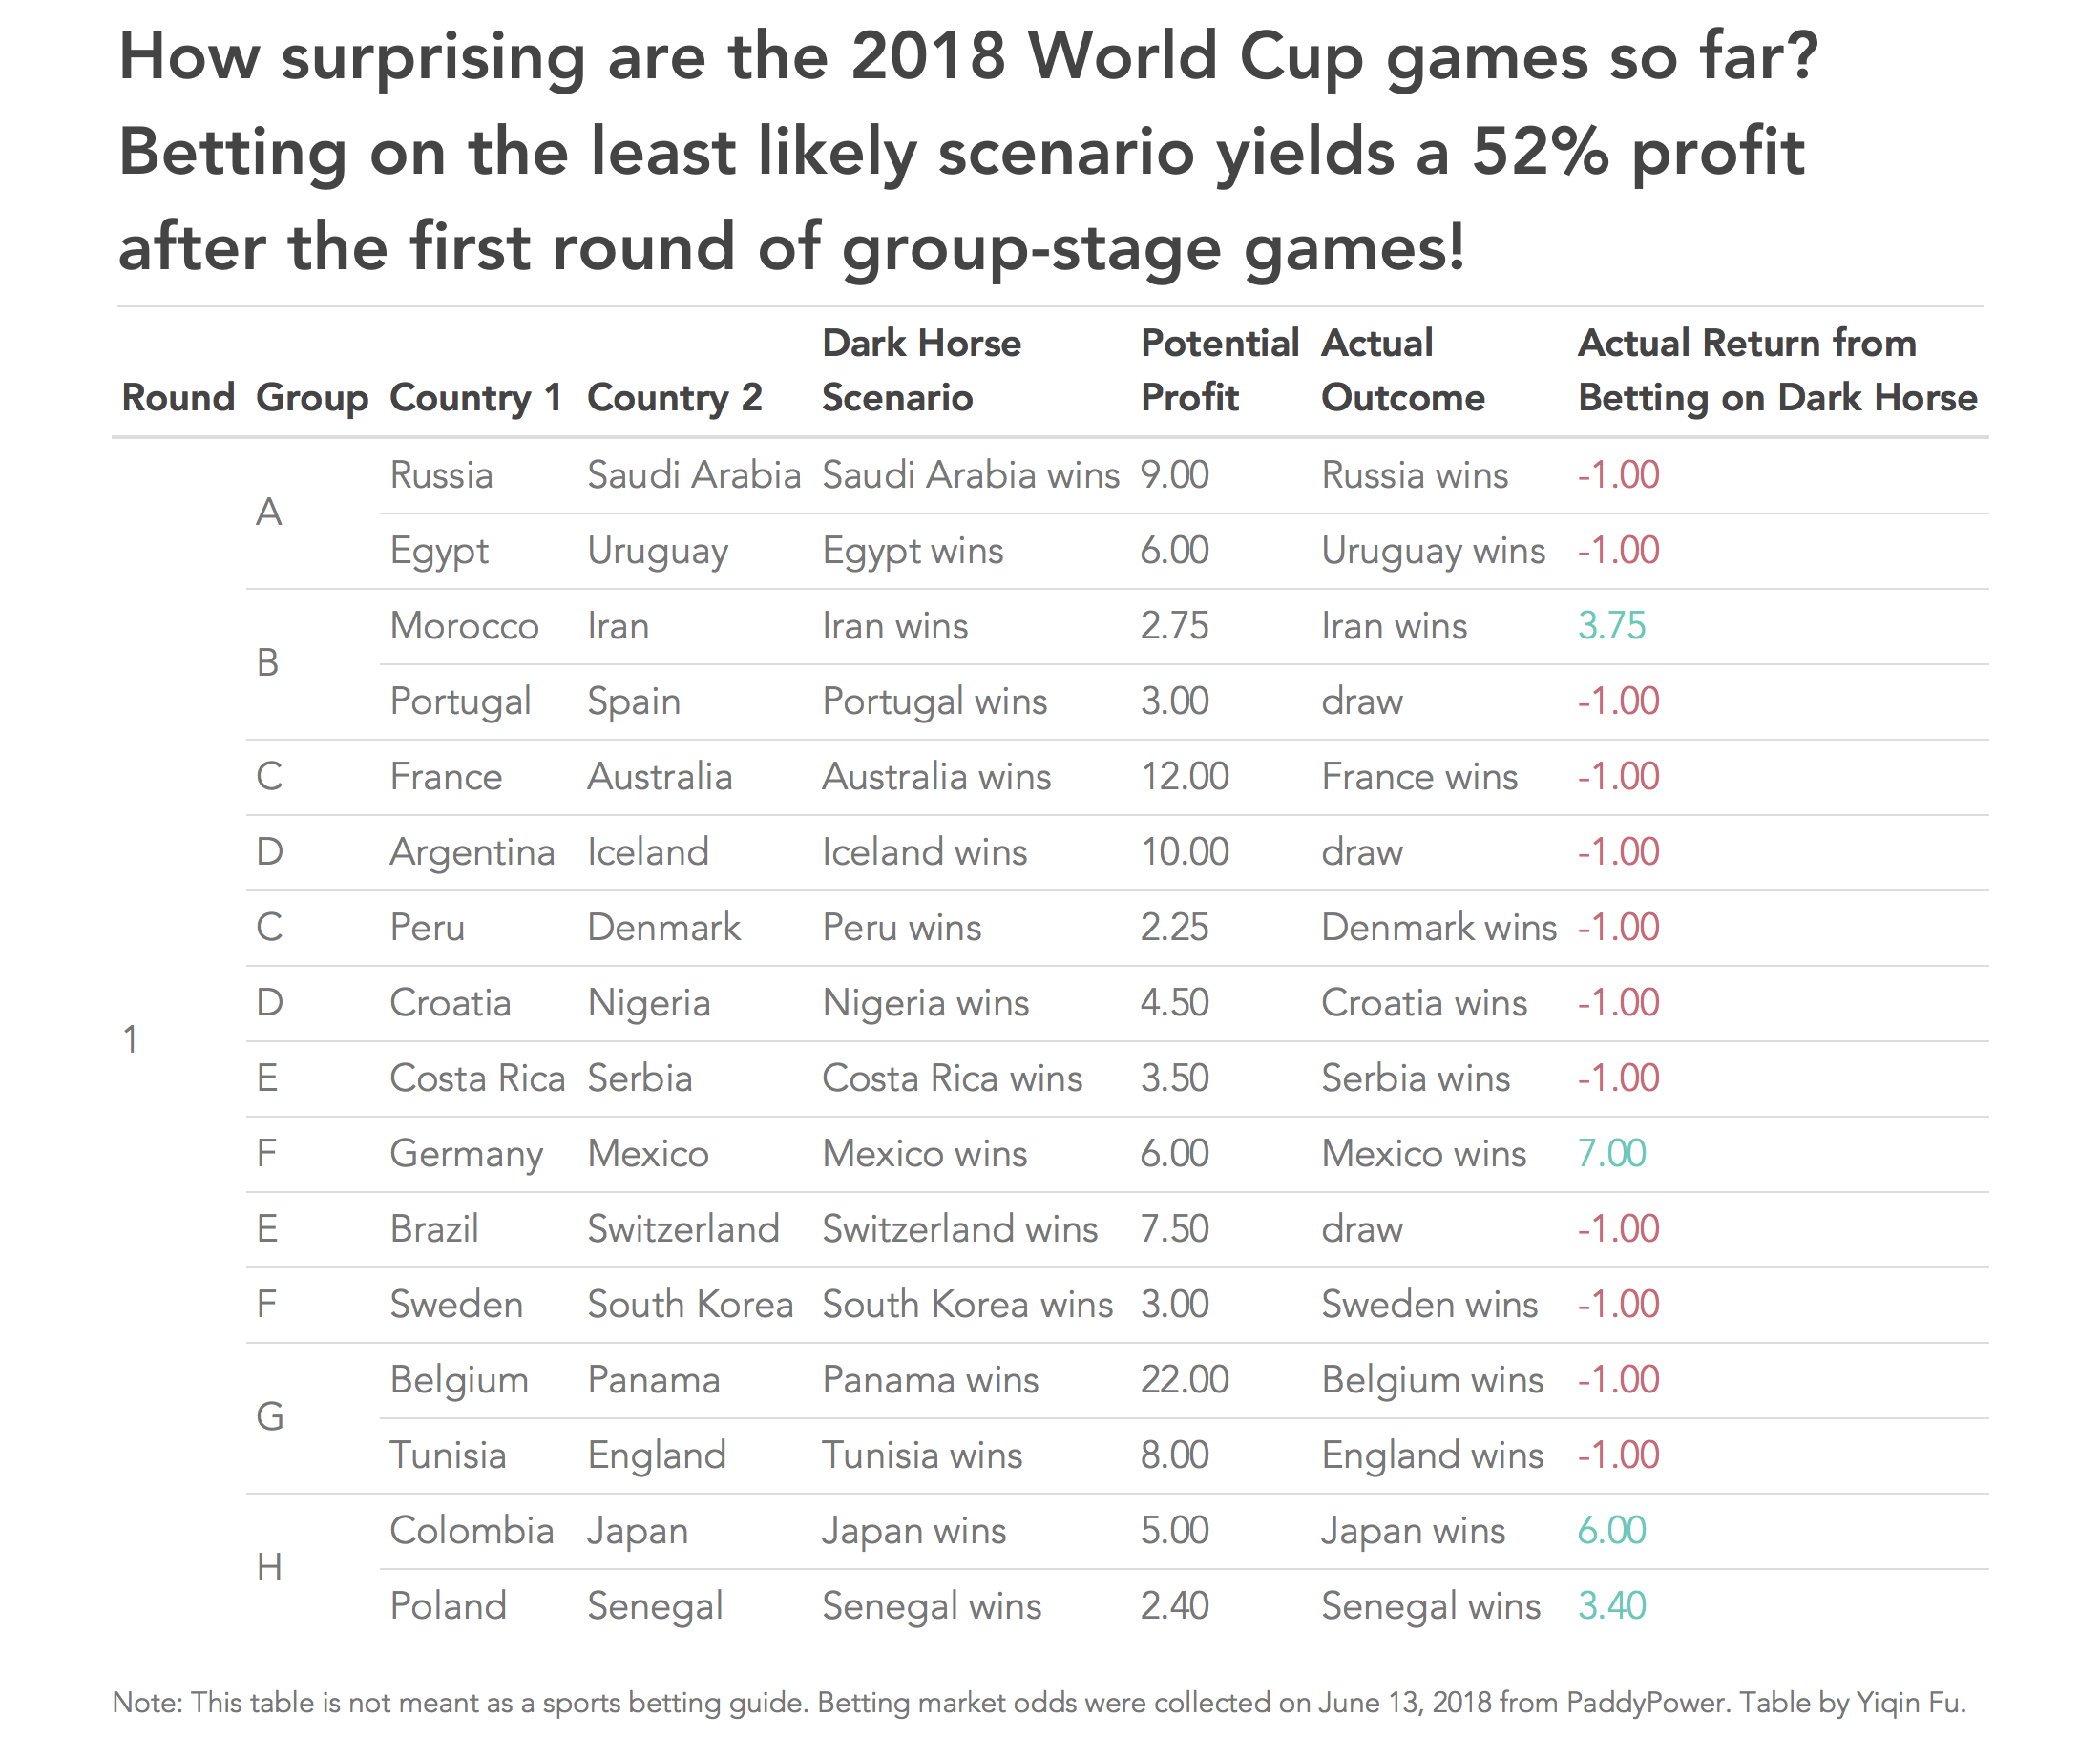 Betting on All of the 2018 Russia World Cup's Dark Horses: 52